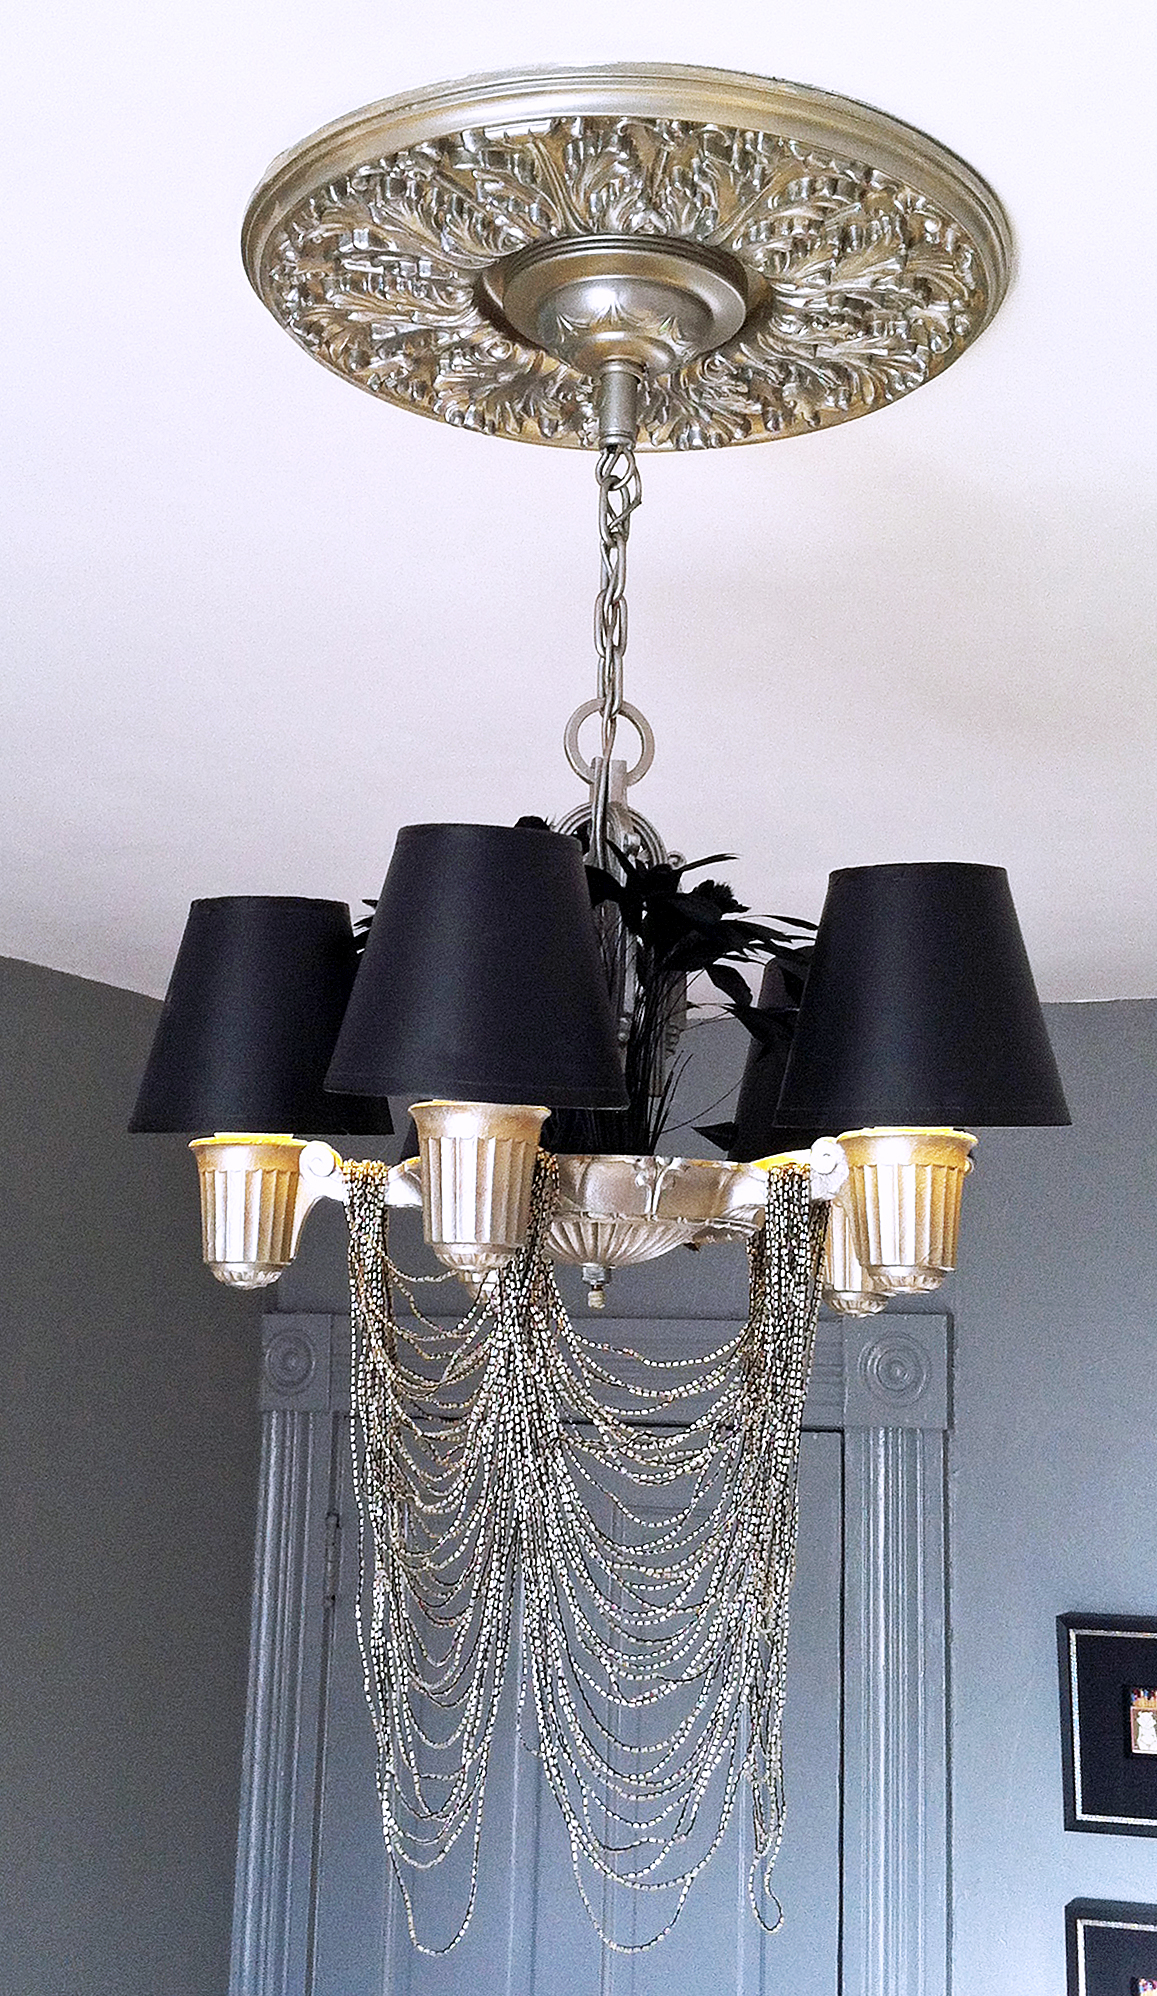 The Diy Bedroom Re Do Chic Rock Star Glam The Ceiling Light Restyled The Year Of Living